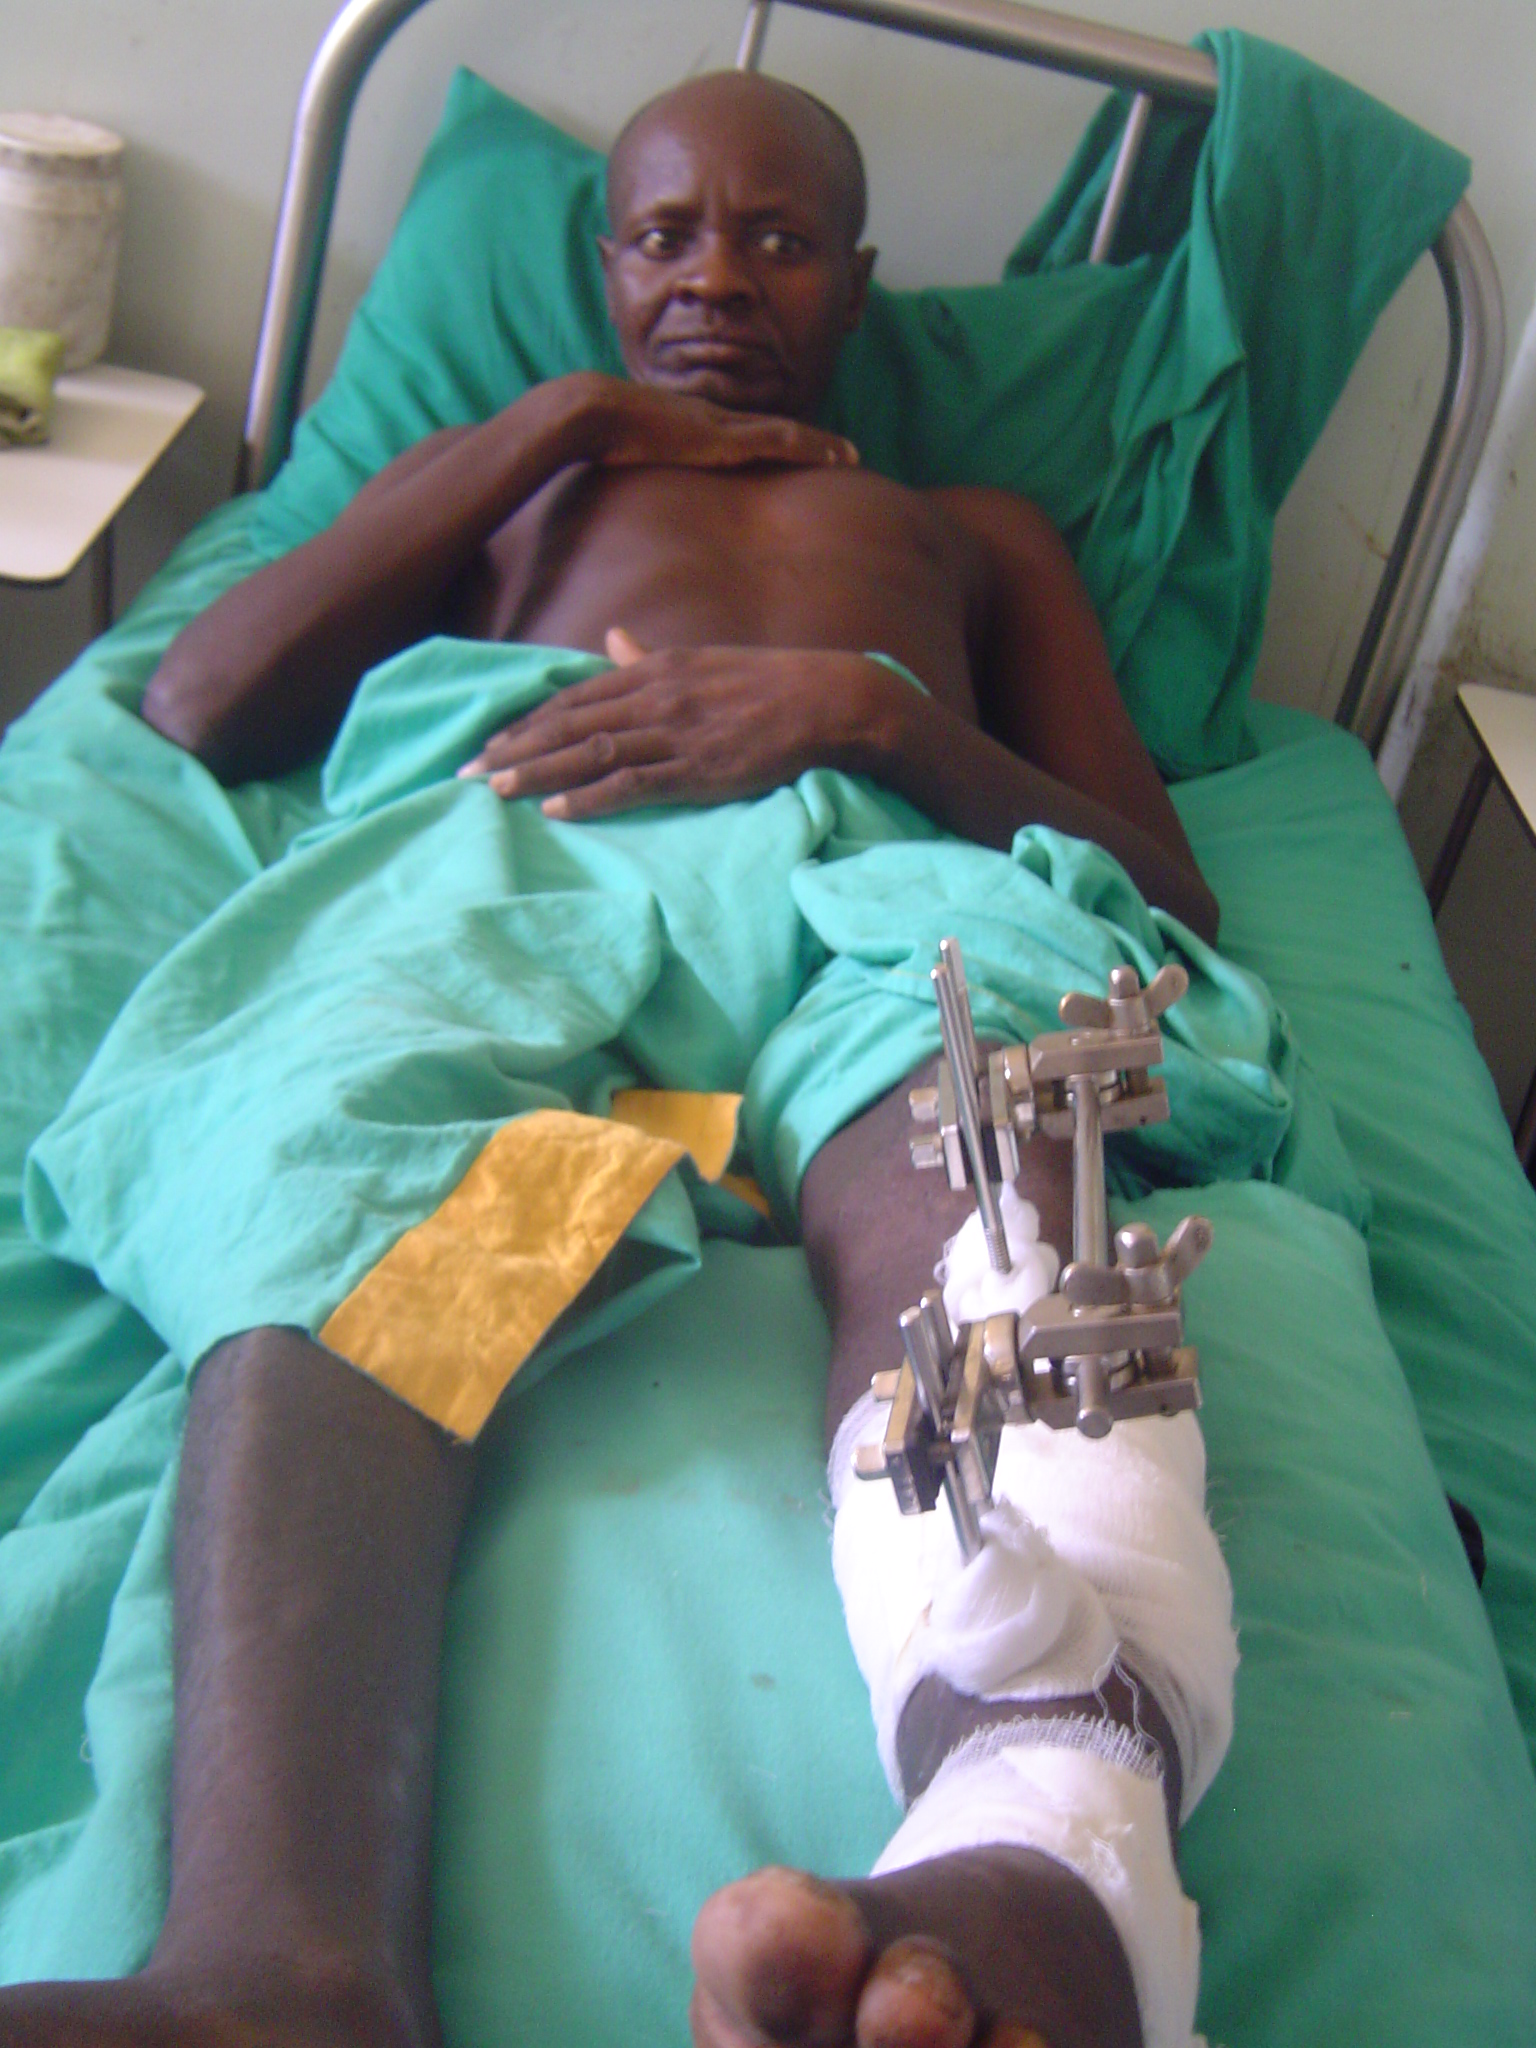 A Karimojong man injured during a raids lies on a hospital bed in Moroto.